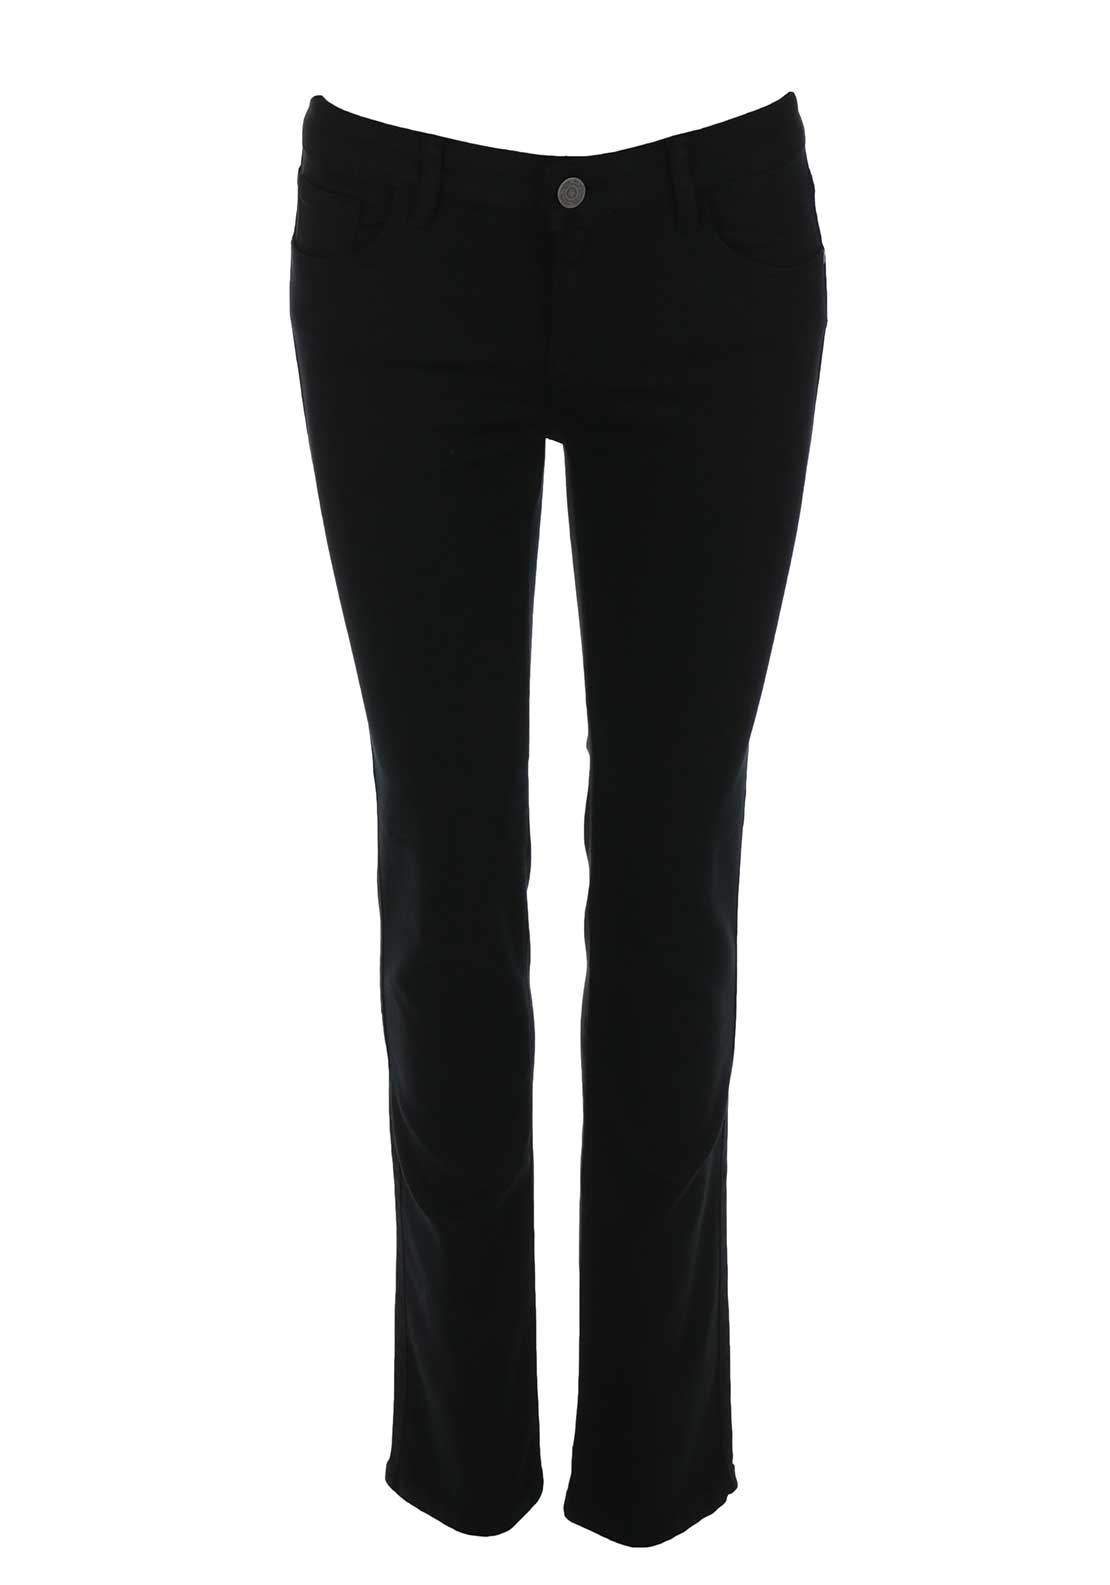 Mos Mosh Athena Regular Slim Leg Jeans, Black